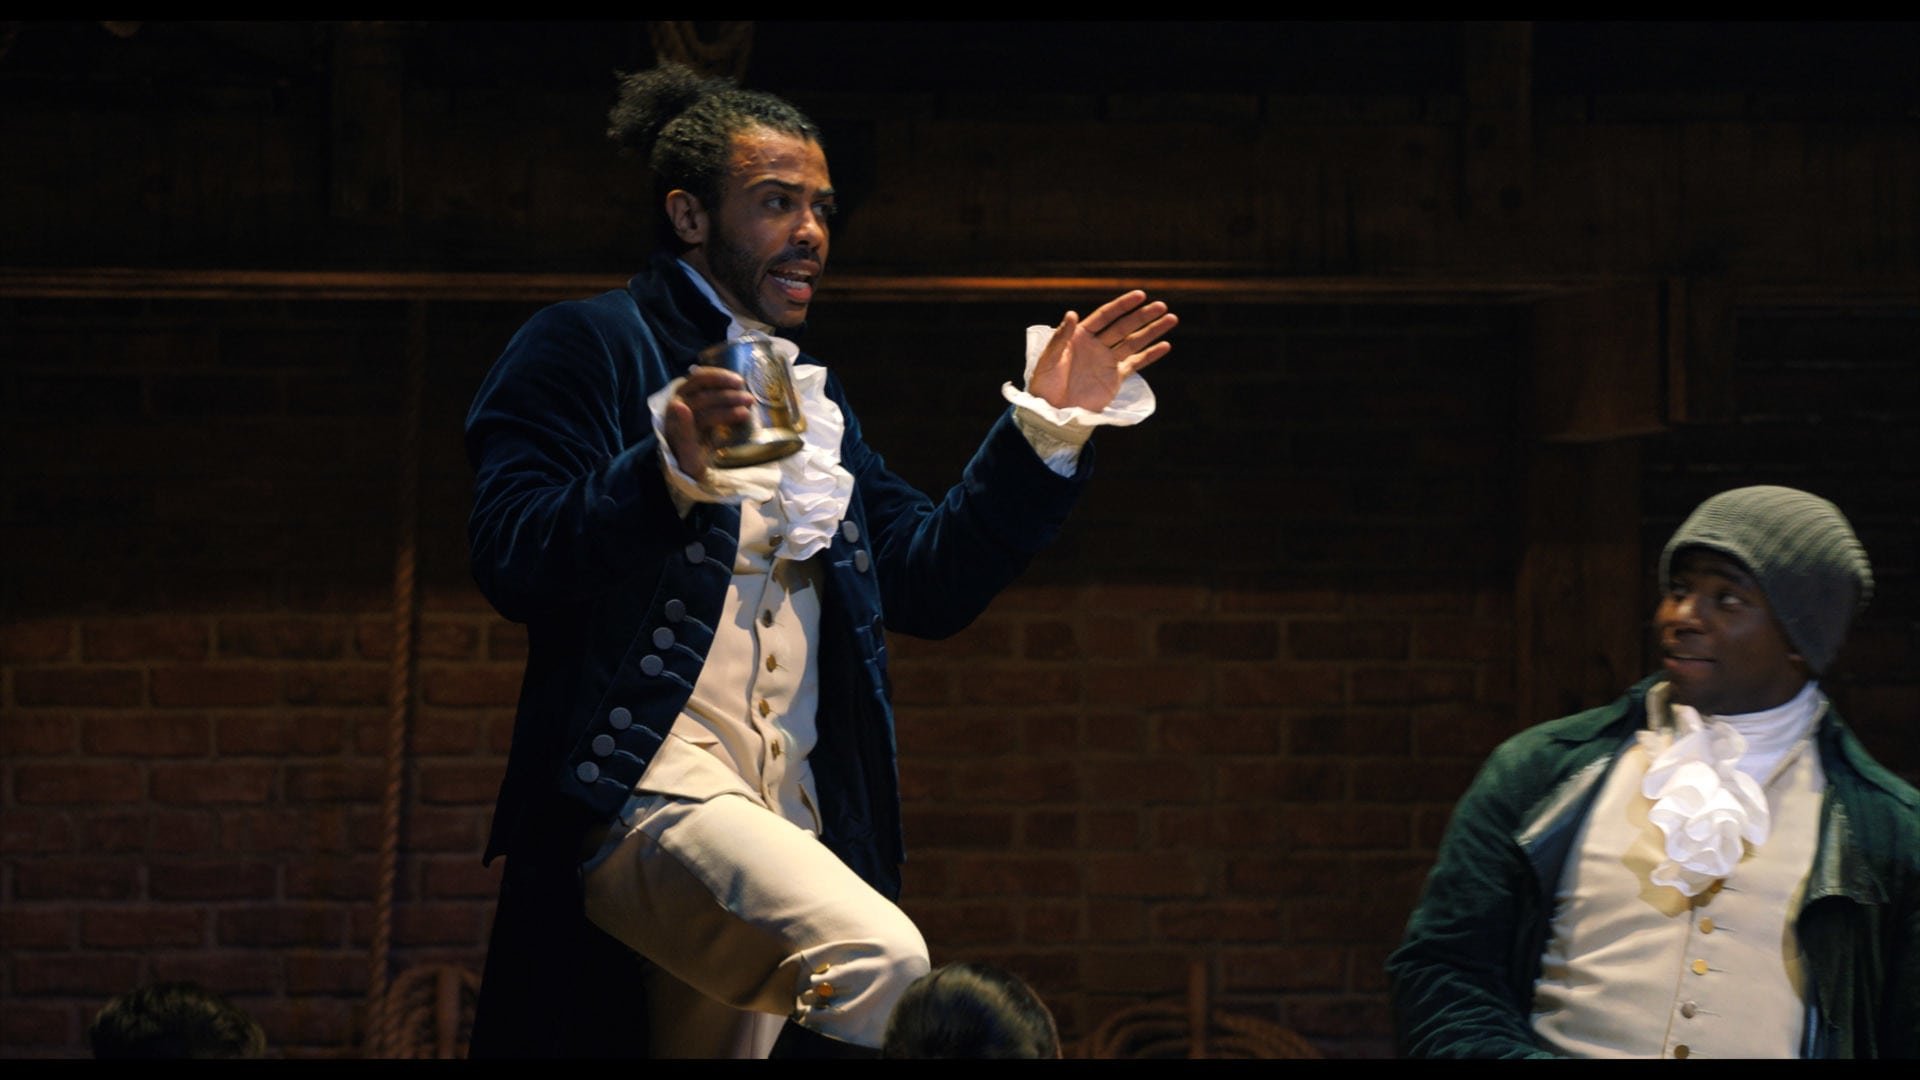 Daveed Diggs is Marquis de Lafayette and Okieriete Onaodowan is Hercules Mulligan in HAMILTON, the filmed version of the original Broadway production.